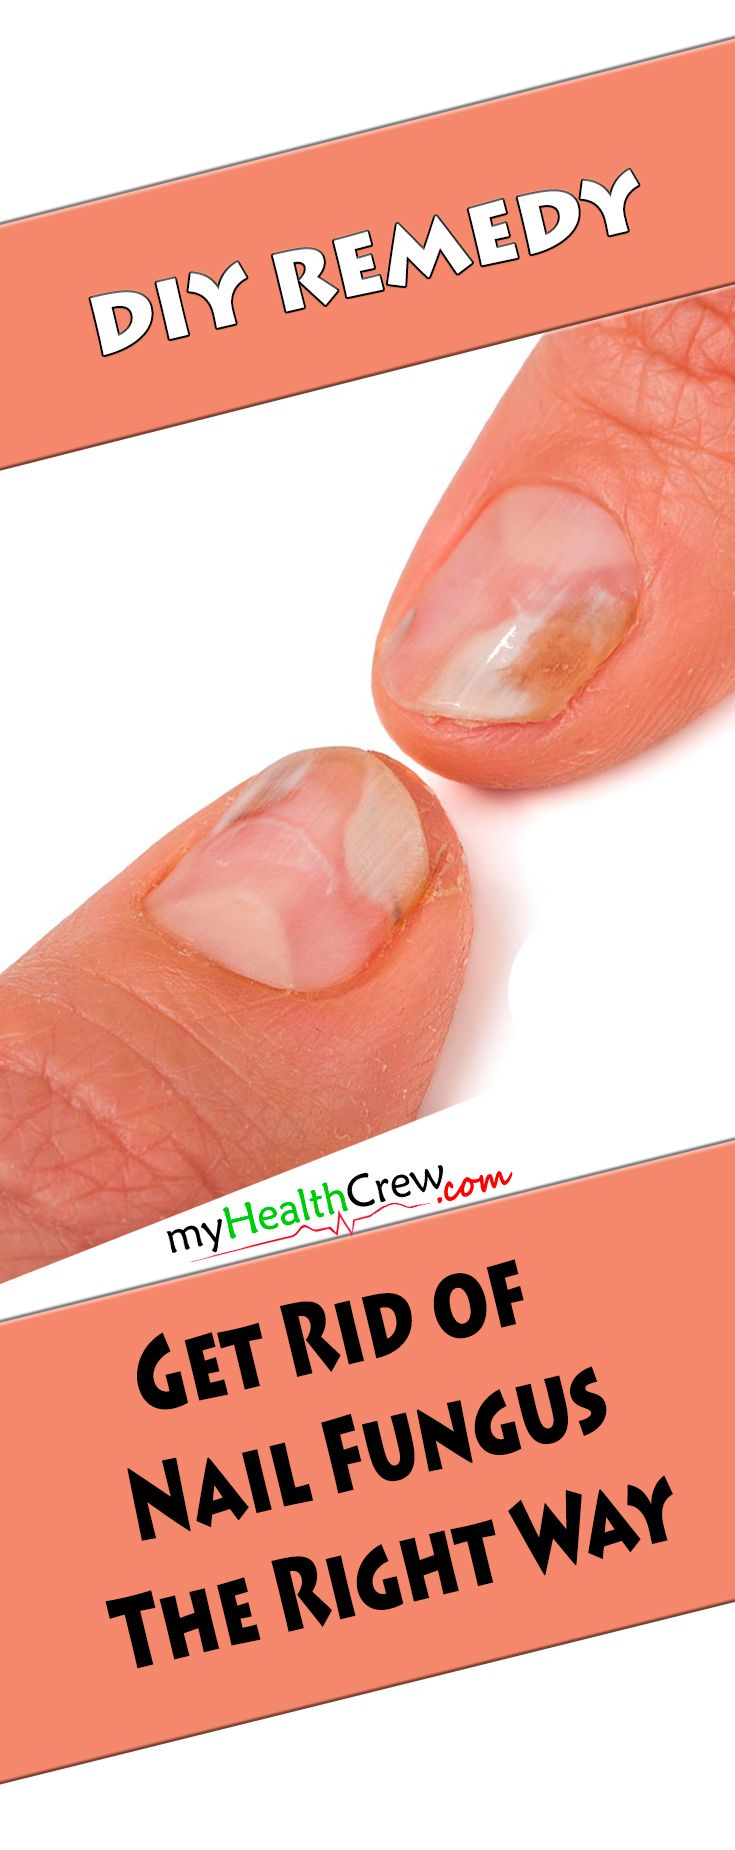 Get rid of nail fungus tips revealed! Exclusively for you! The secret Americans don't want you to know about mind-blowing tips to get rid of nail fungus